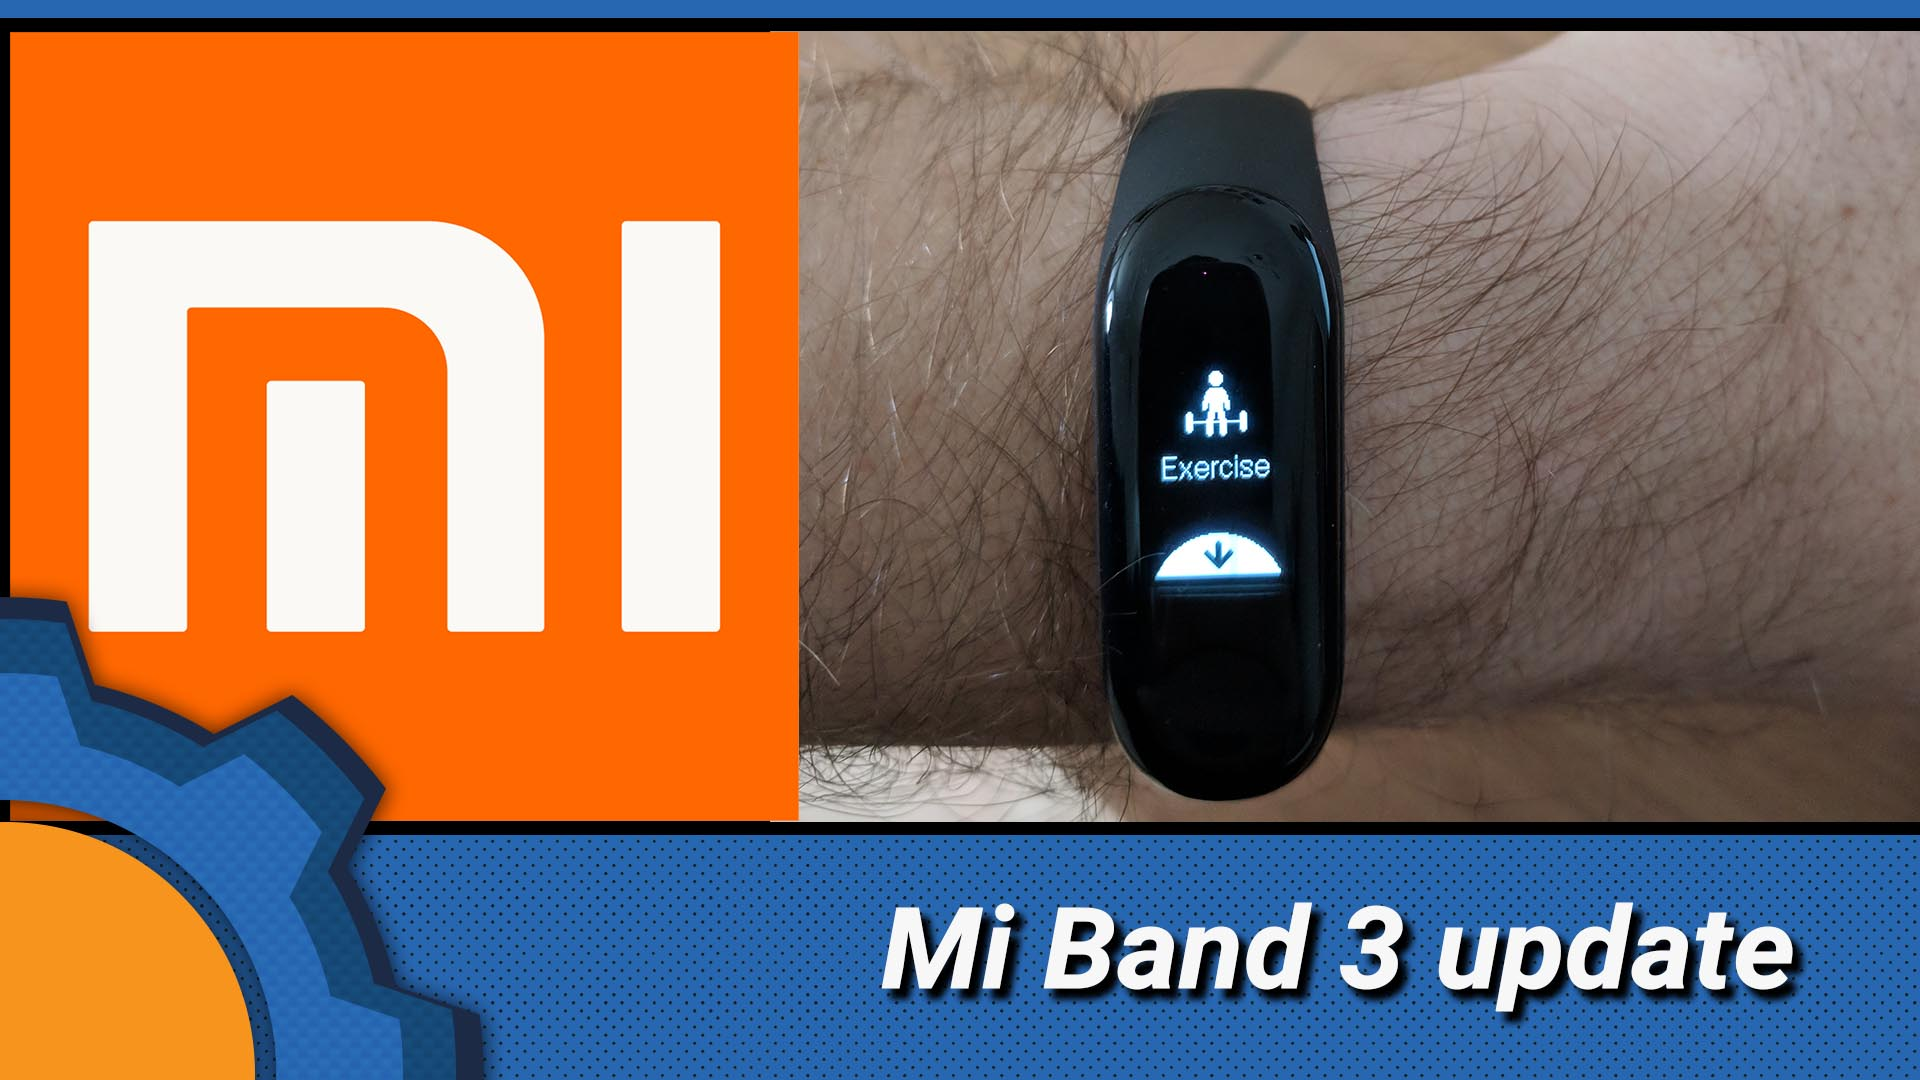 Xiaomi's Mi Band 3 update makes it more useful - Not Enough TECH